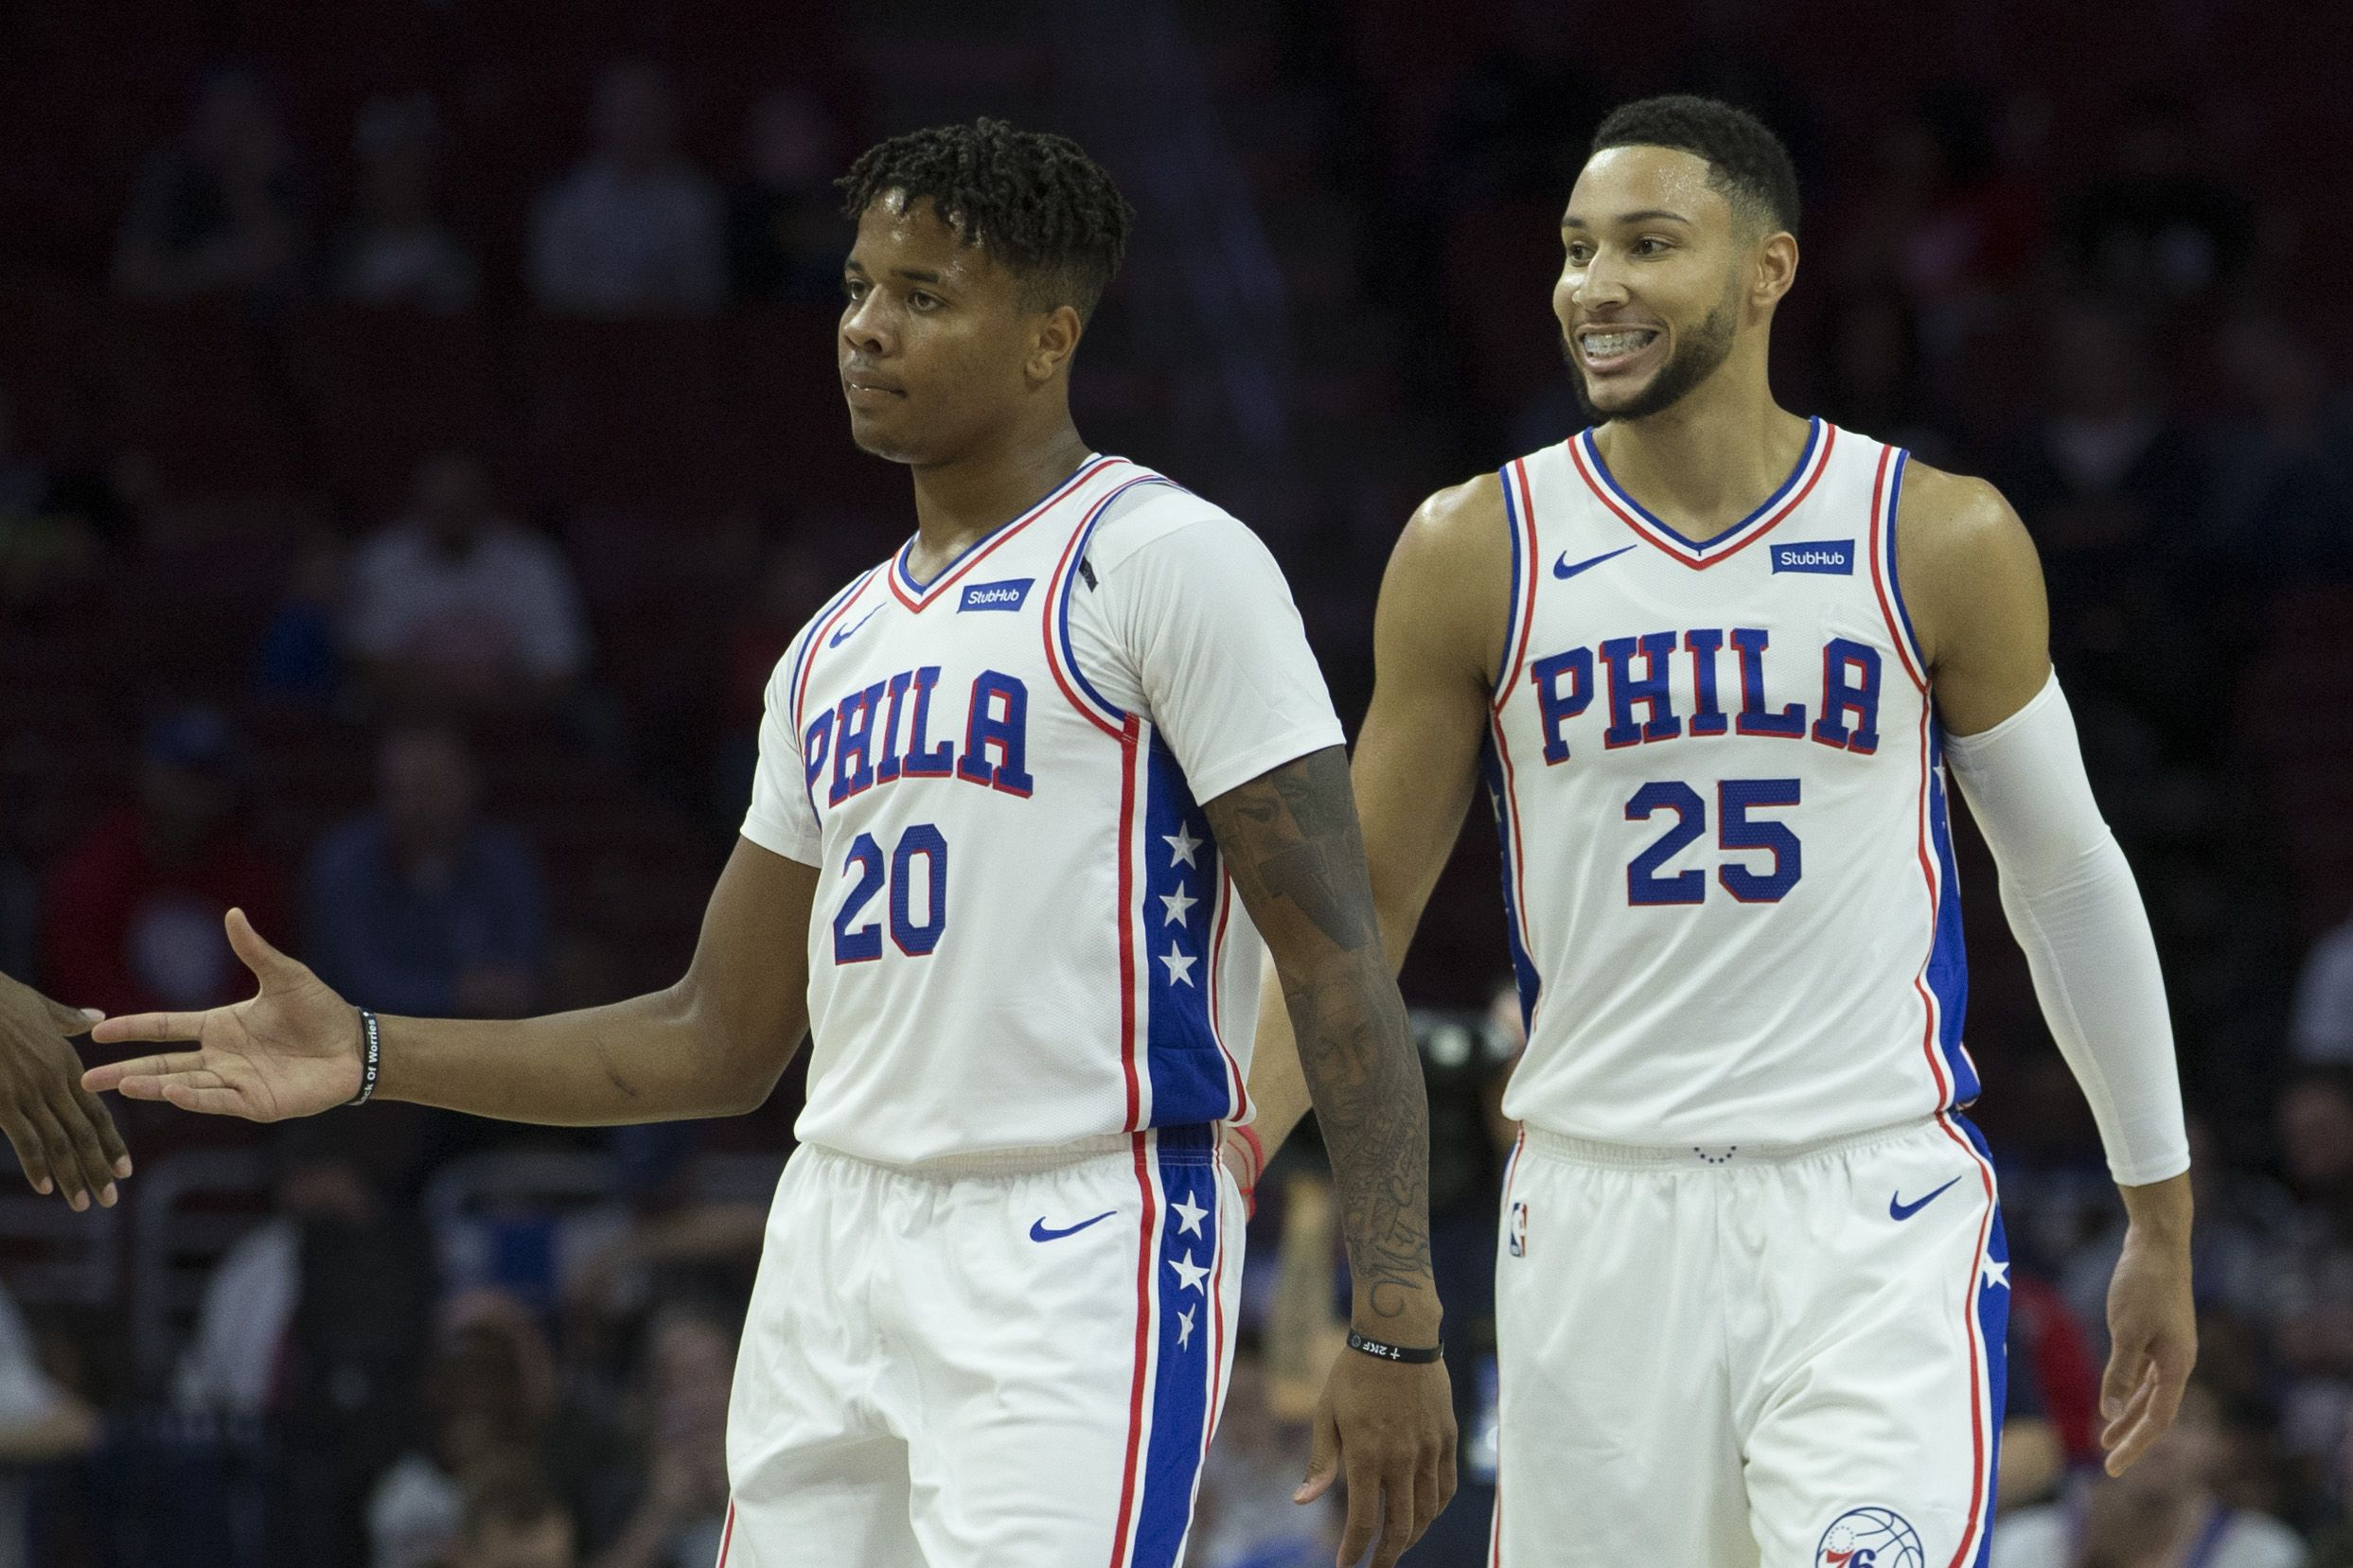 69f5ebacd7ec Markelle Fultz (left) and Ben Simmons (right) of the Philadelphia 76ers are  pictured in a preseason game at Wells Fargo Center on September 28